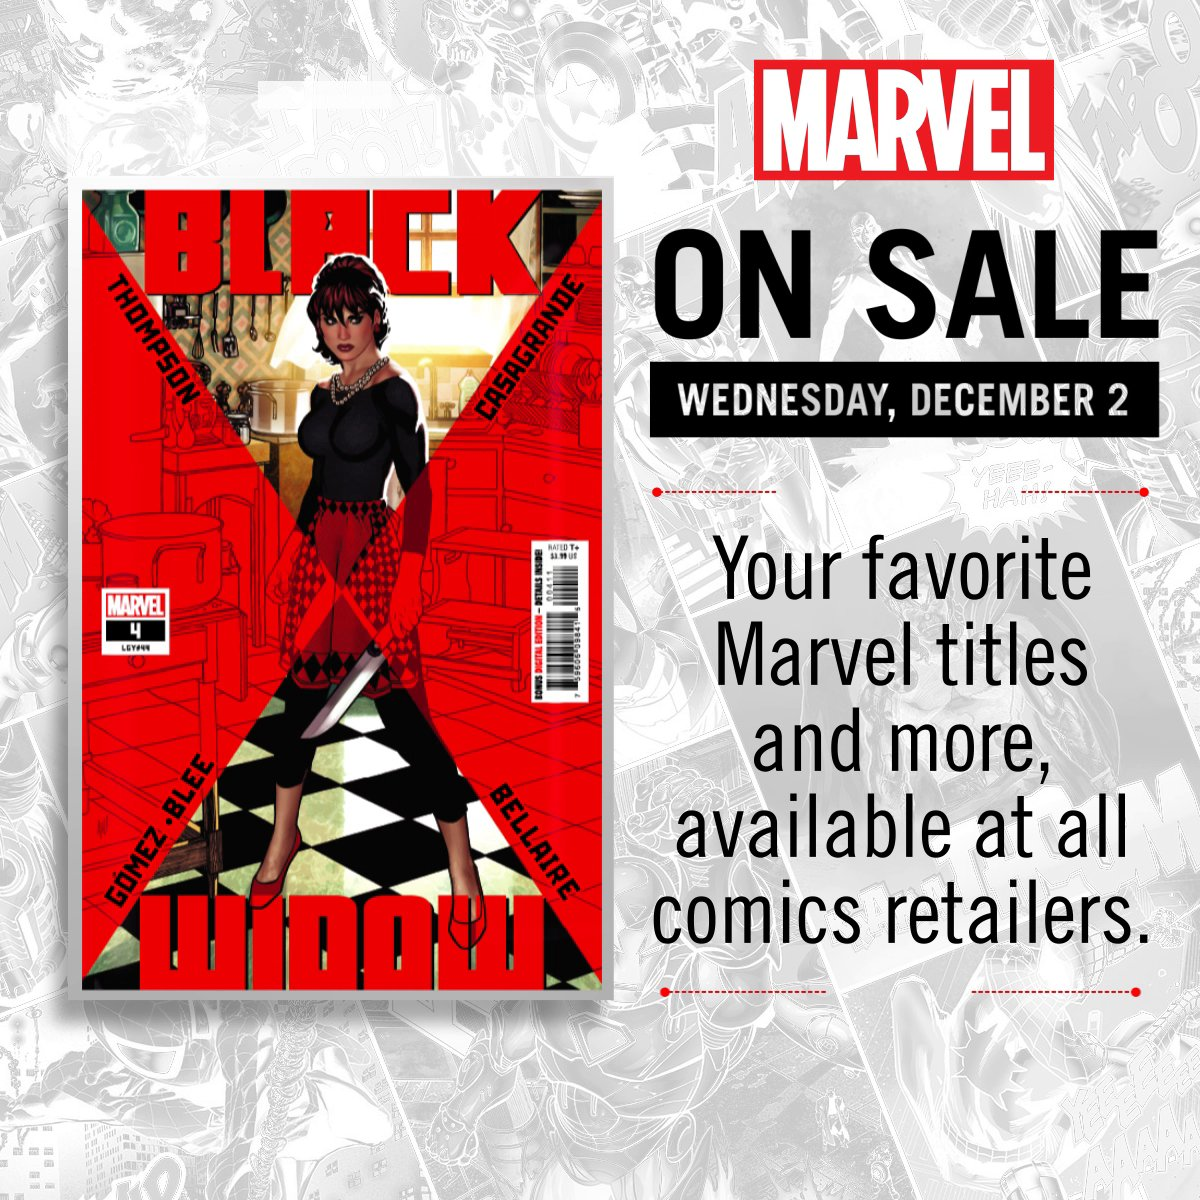 Your look at comics hitting shelves next week! What's at the top of your list?